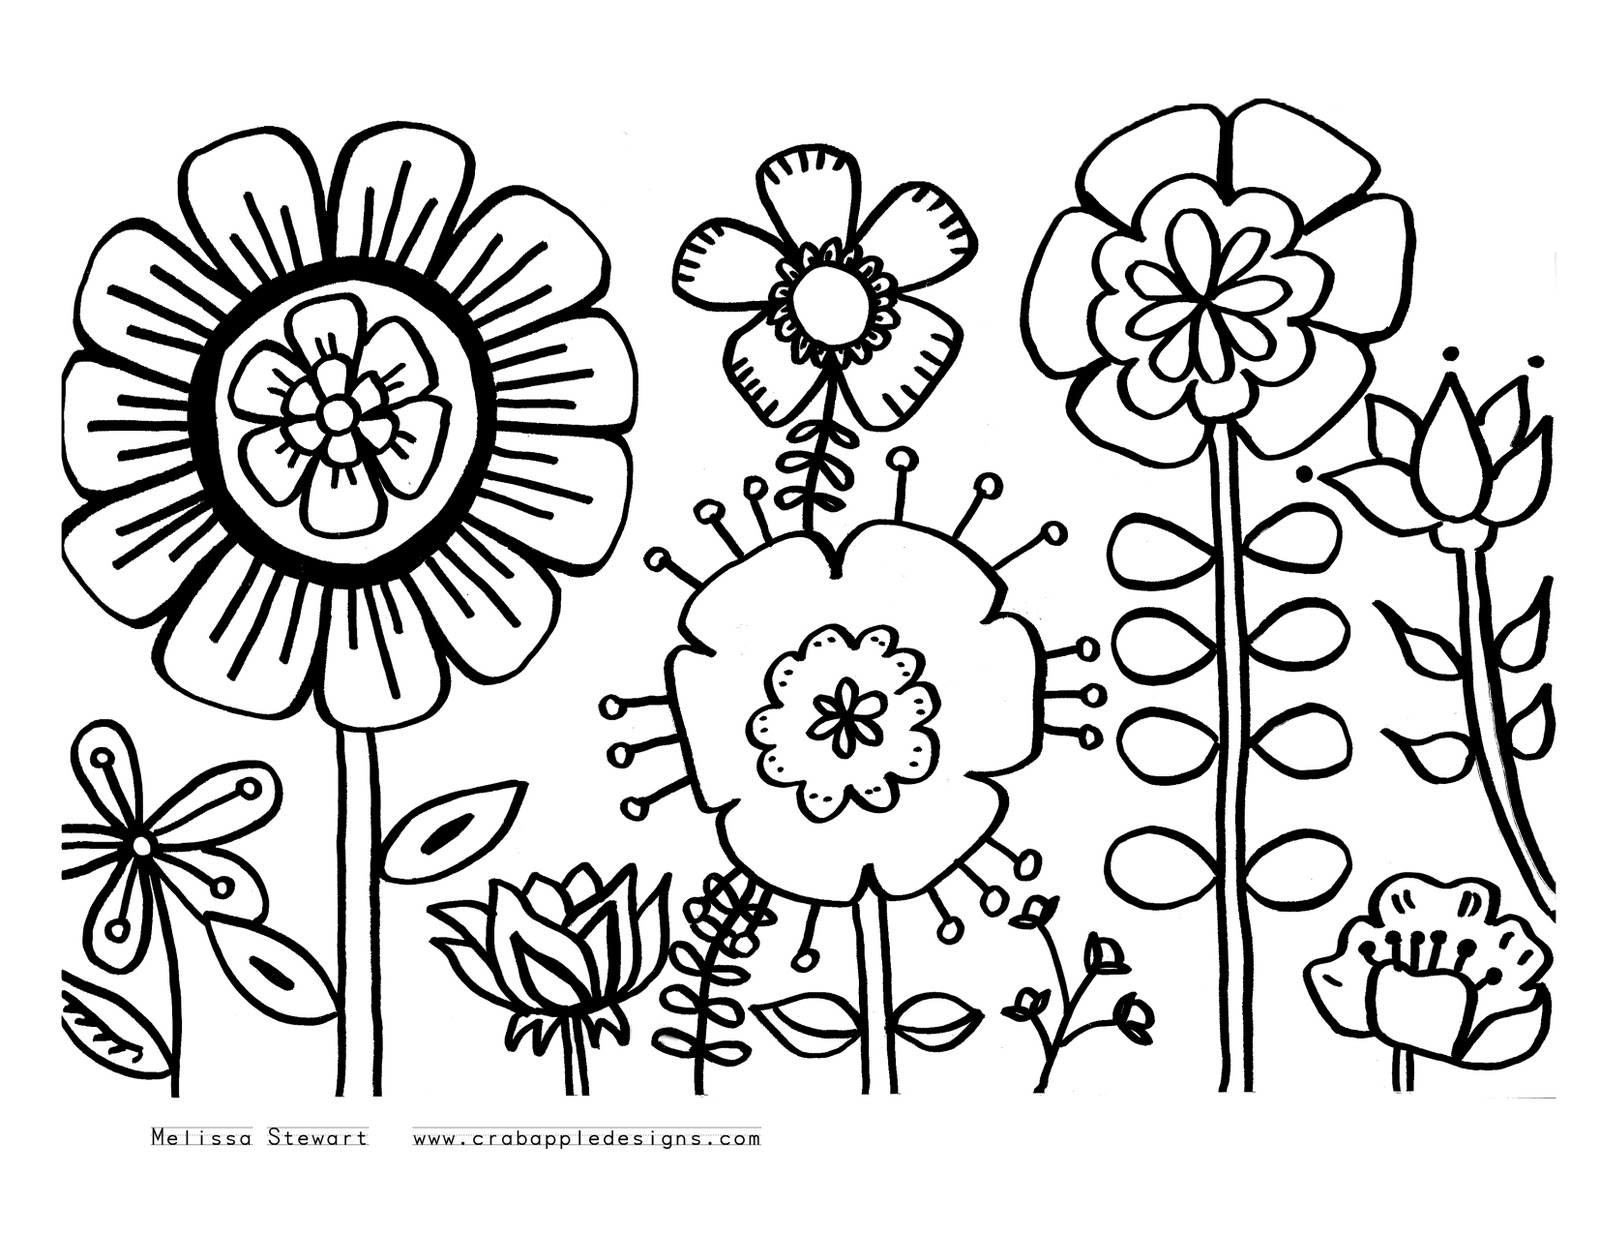 Flower Coloring Craft : 42 printable flower coloring pages Print Color Craft